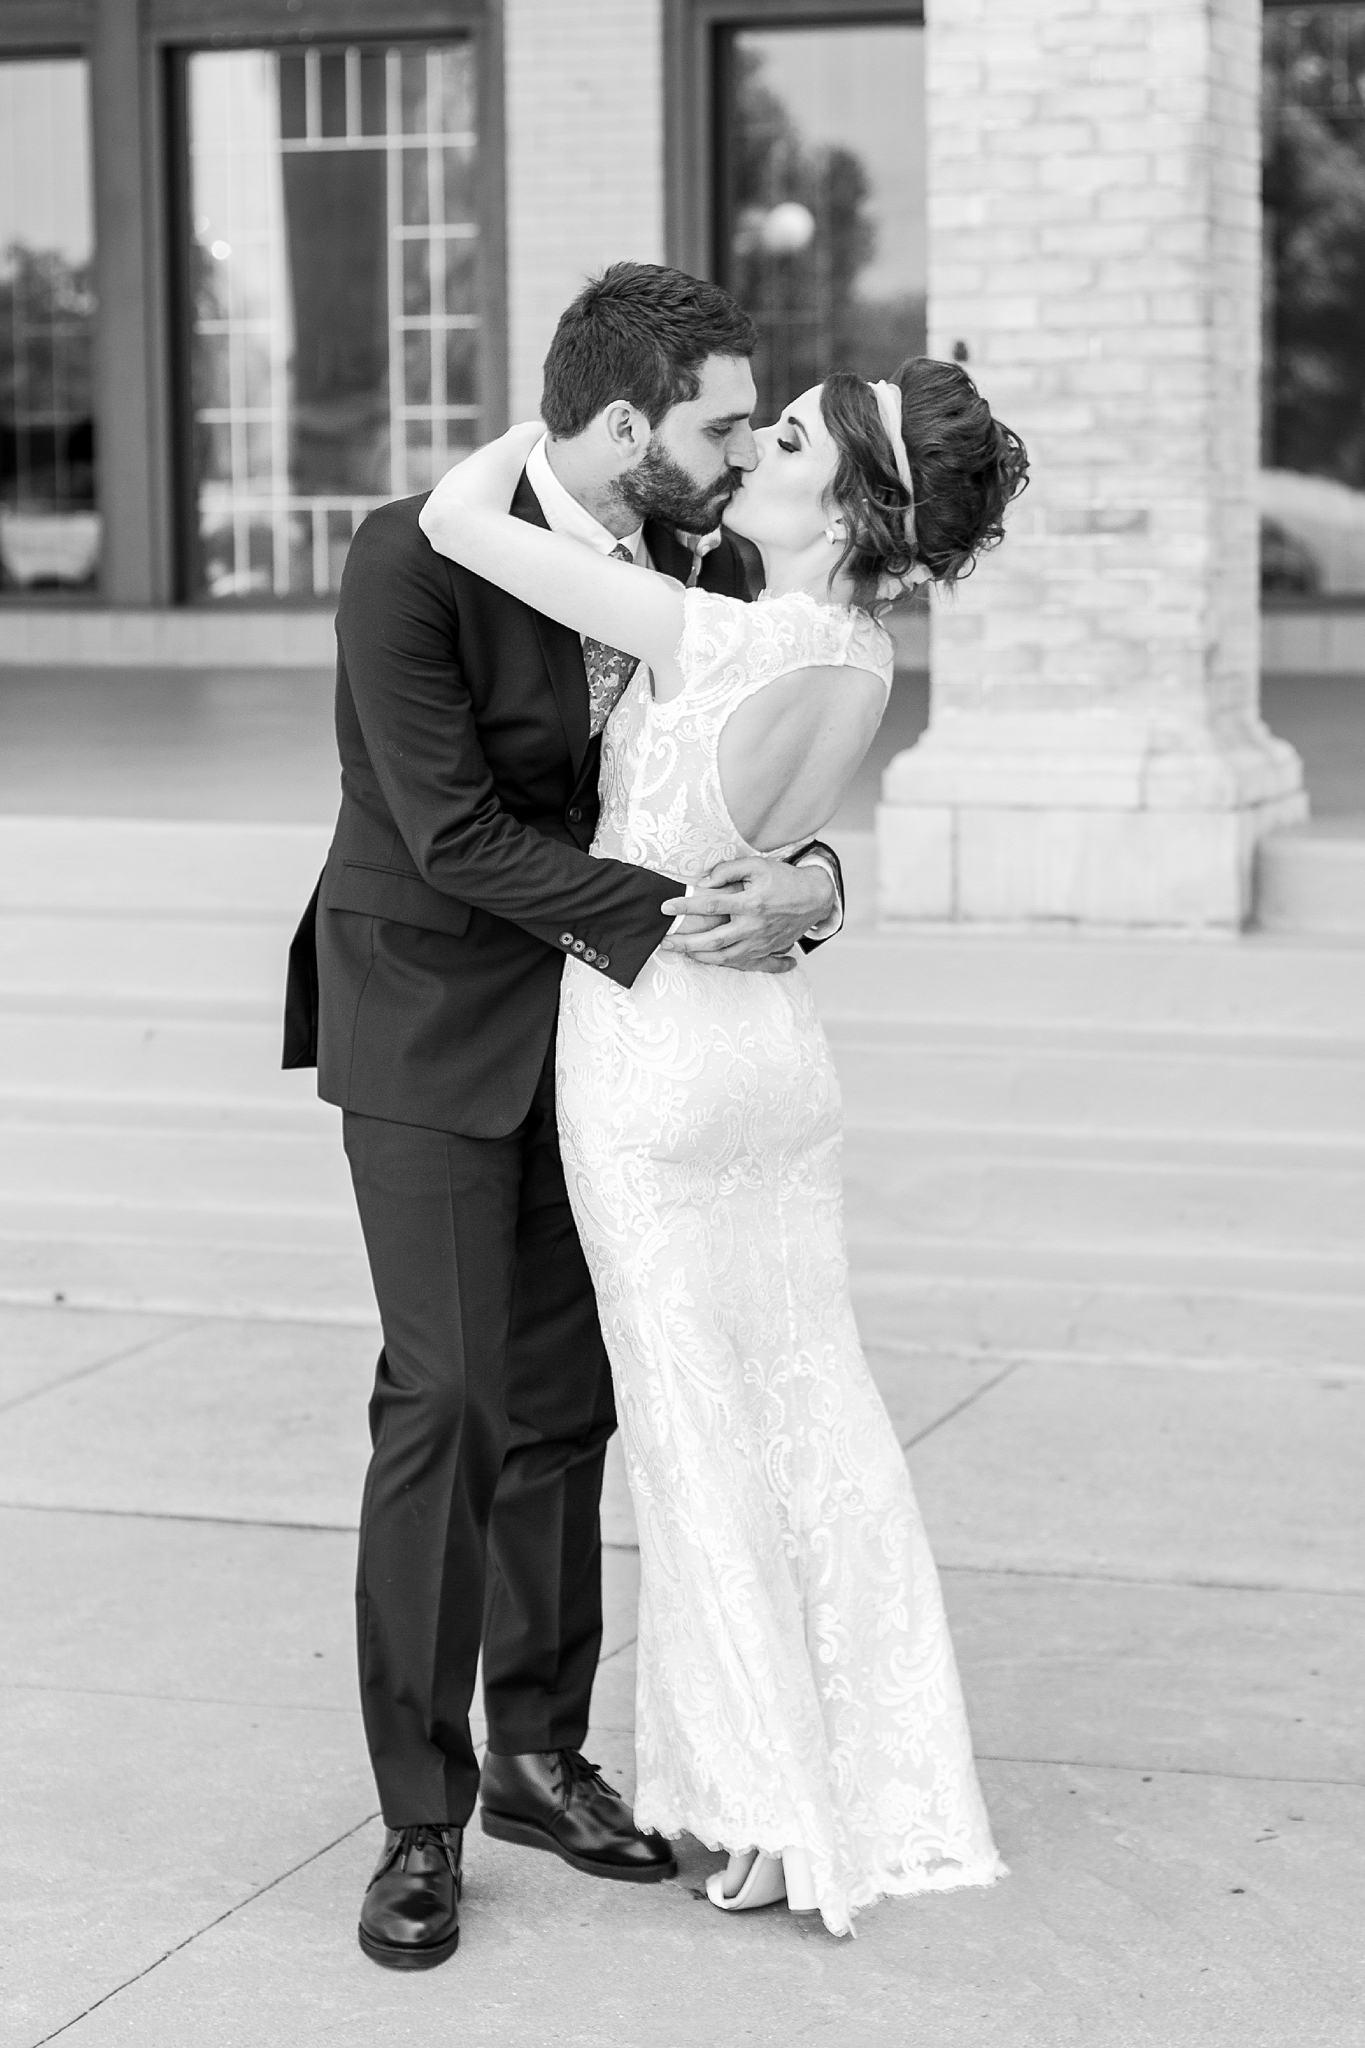 joyful-romantic-modern-laid-back-wedding-photography-in-detroit-ann-arbor-northern-mi-and-chicago-by-courtney-carolyn-photography_0010.jpg